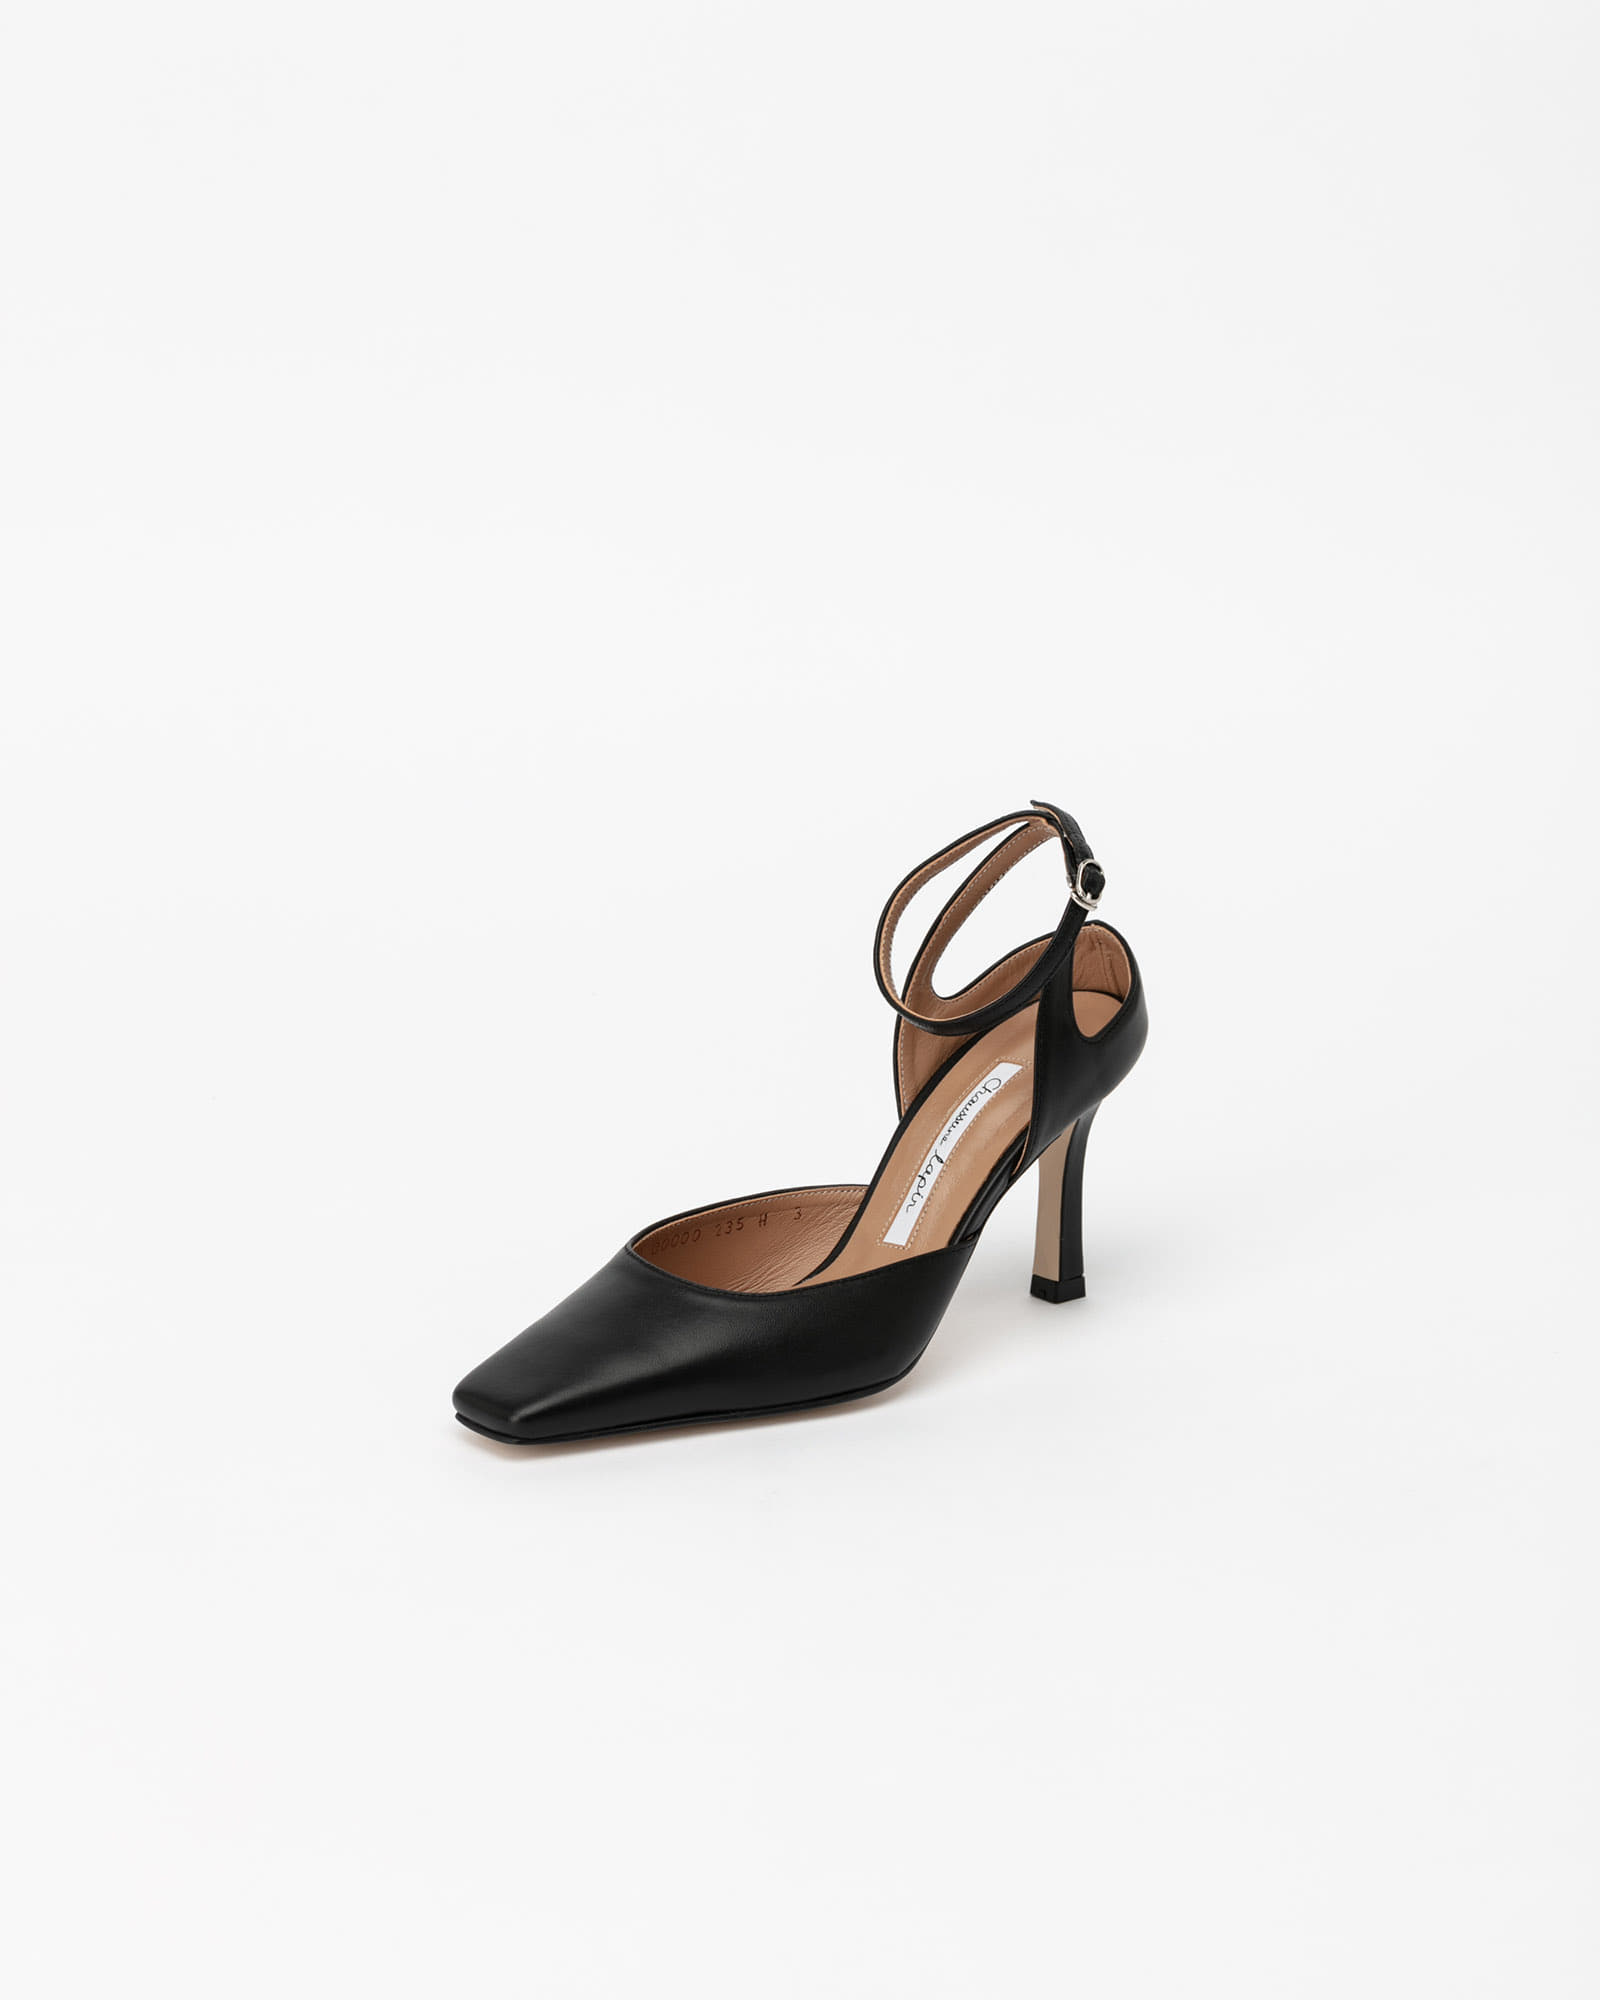 SeQuis Strap Pumps in Black